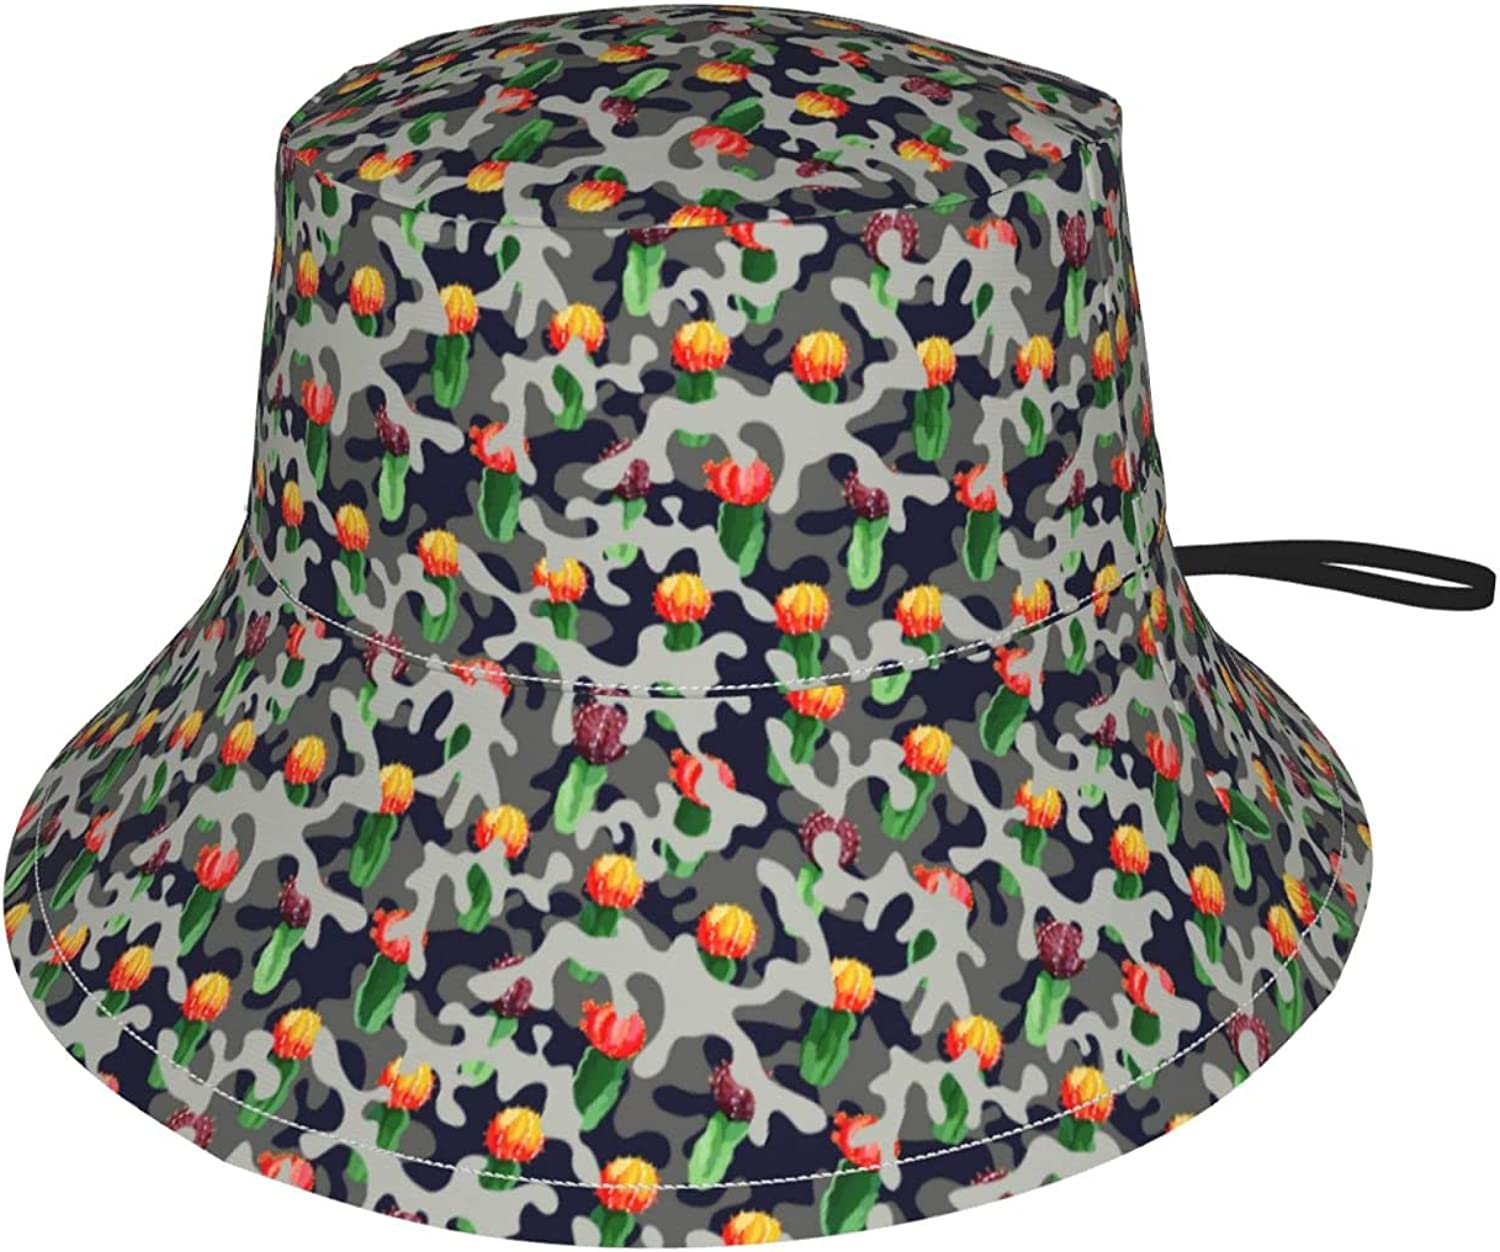 Jedenkuku Children's Fisherman Purchase Hat Sale Special Price Foldable Soft Elas Breathable